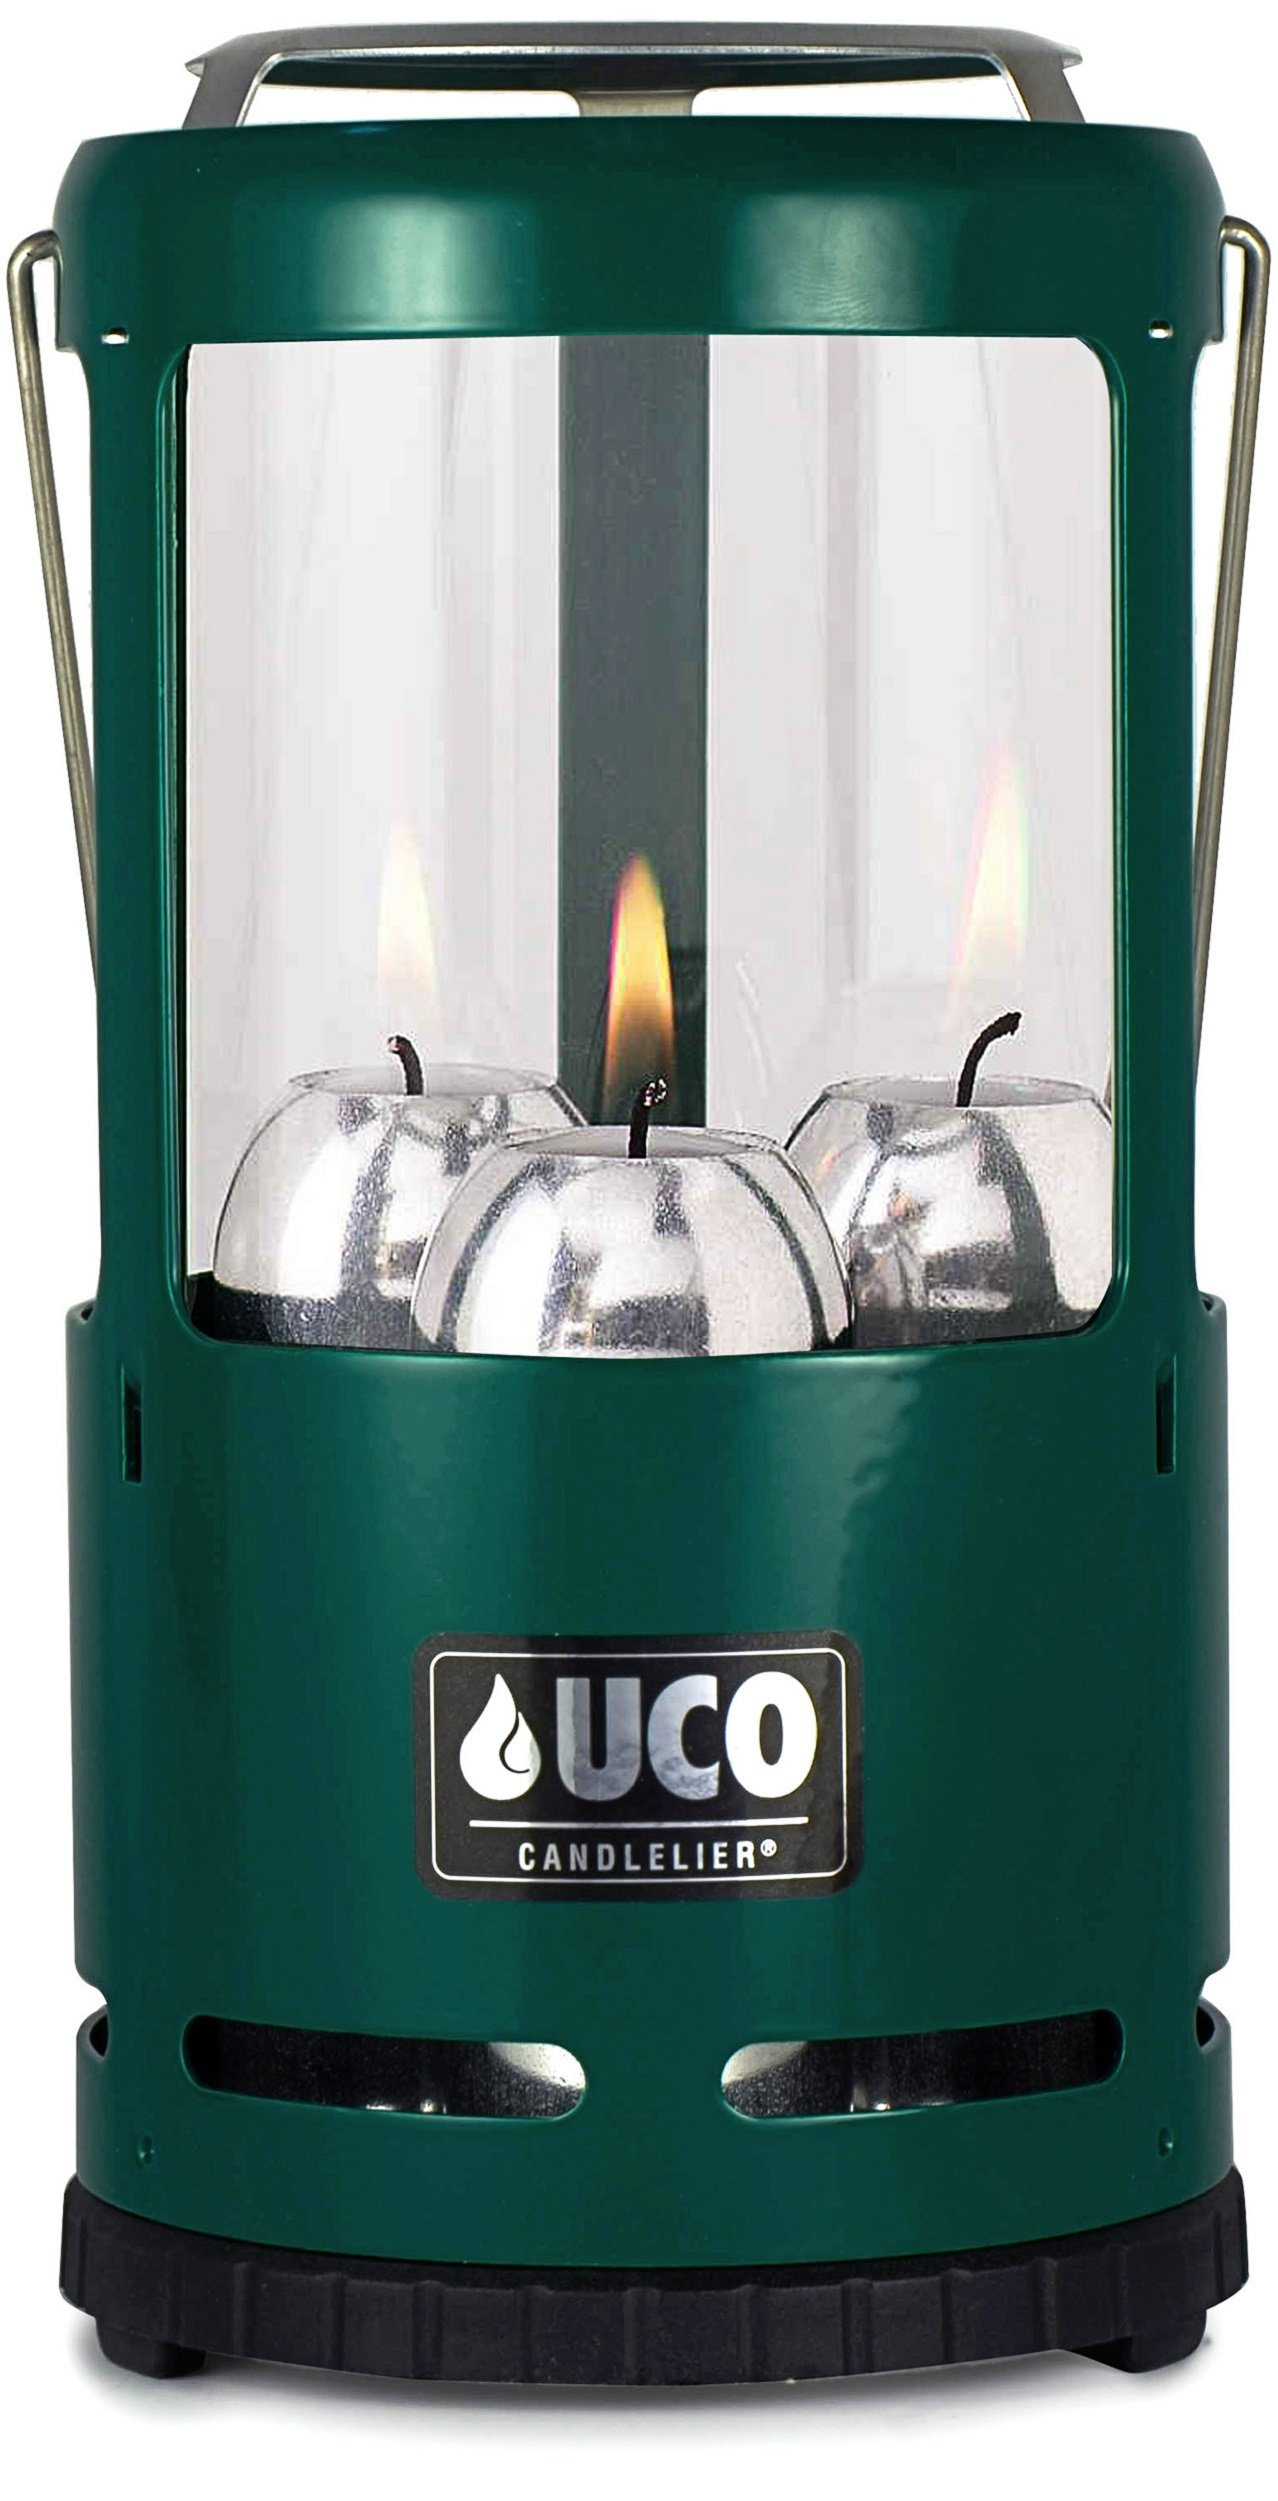 UCO Candlelier Deluxe Candle Lantern, Green